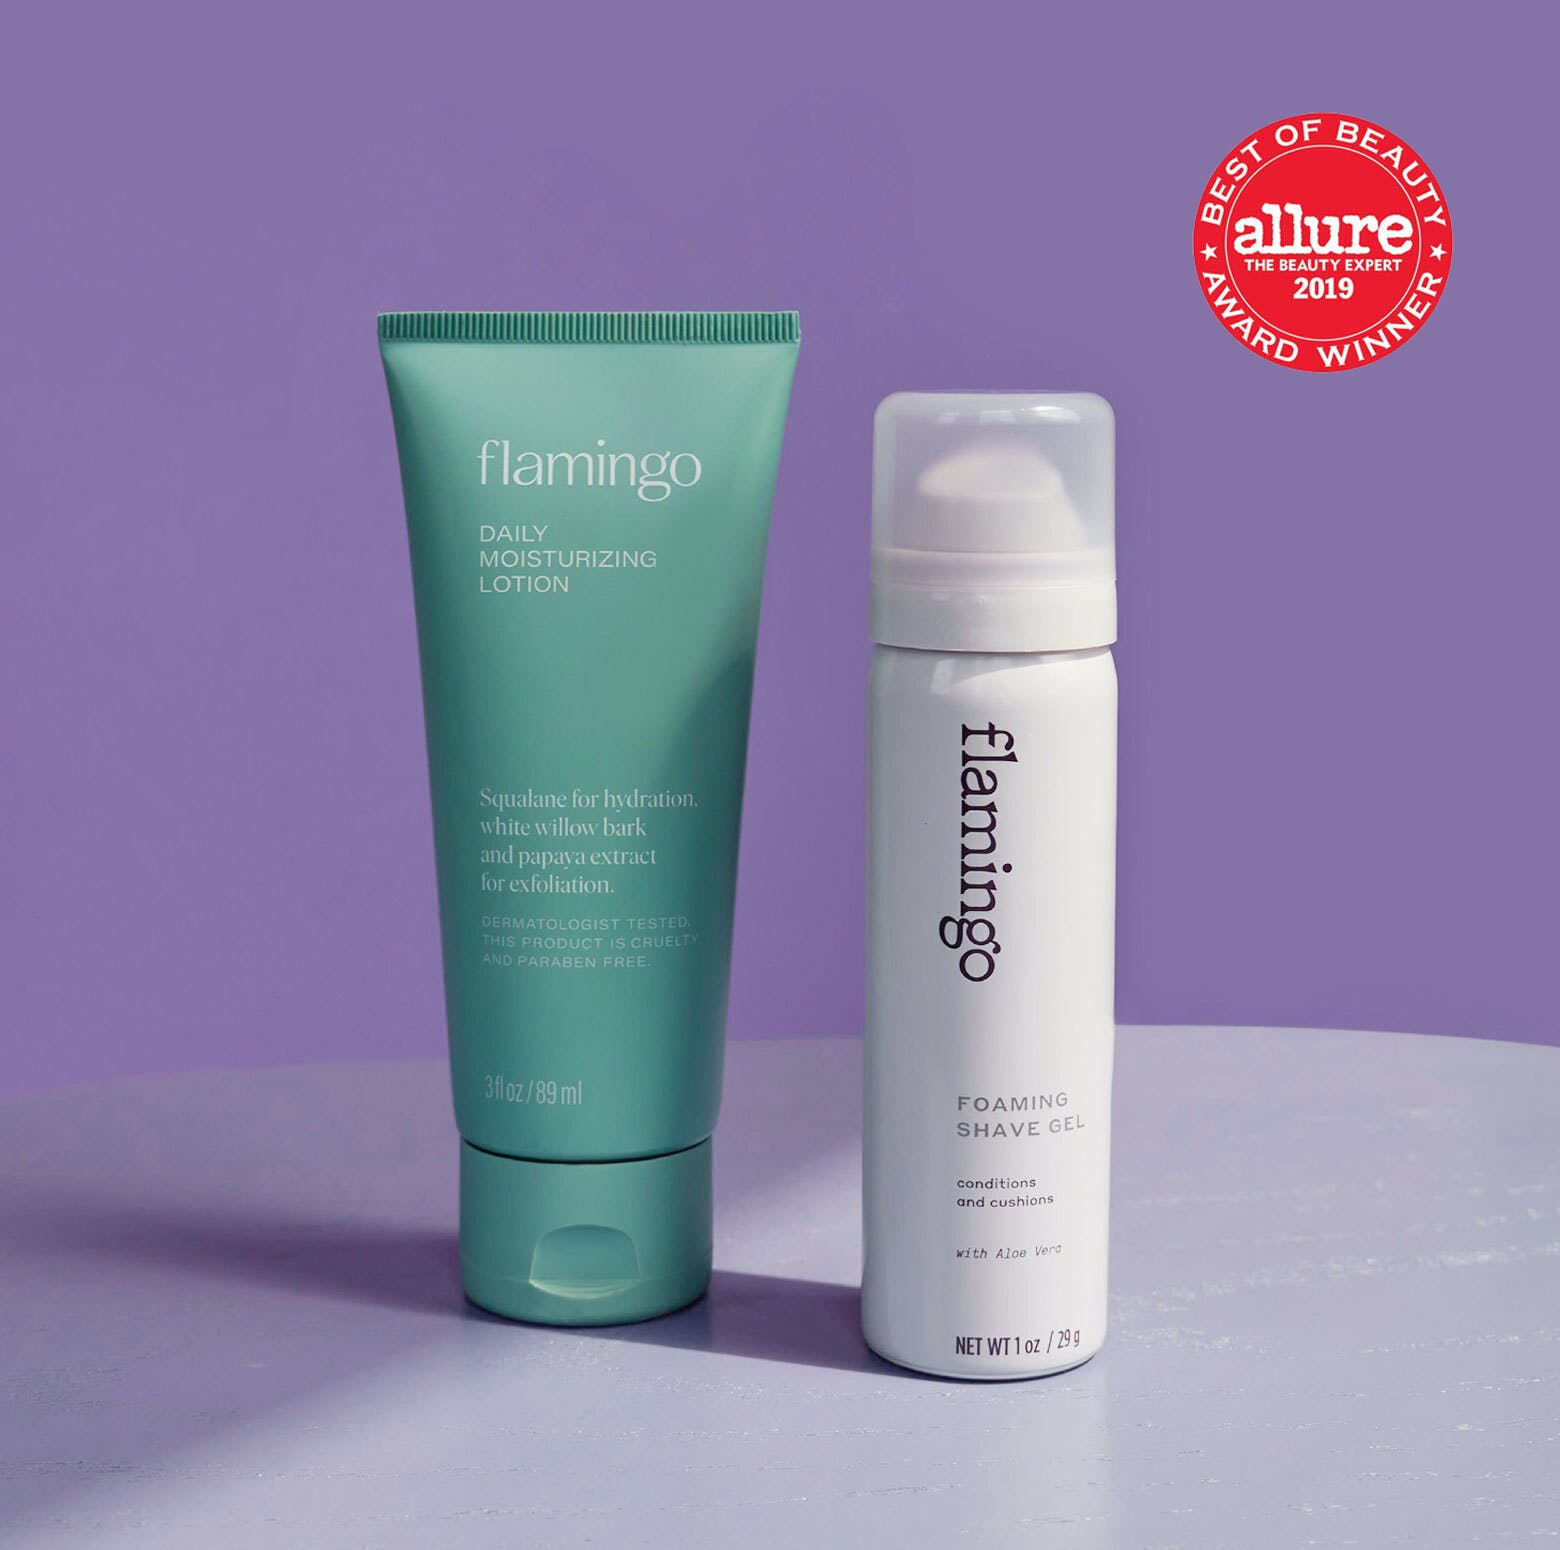 Allure best of beauty seal. Foaming shave gel and body lotion.